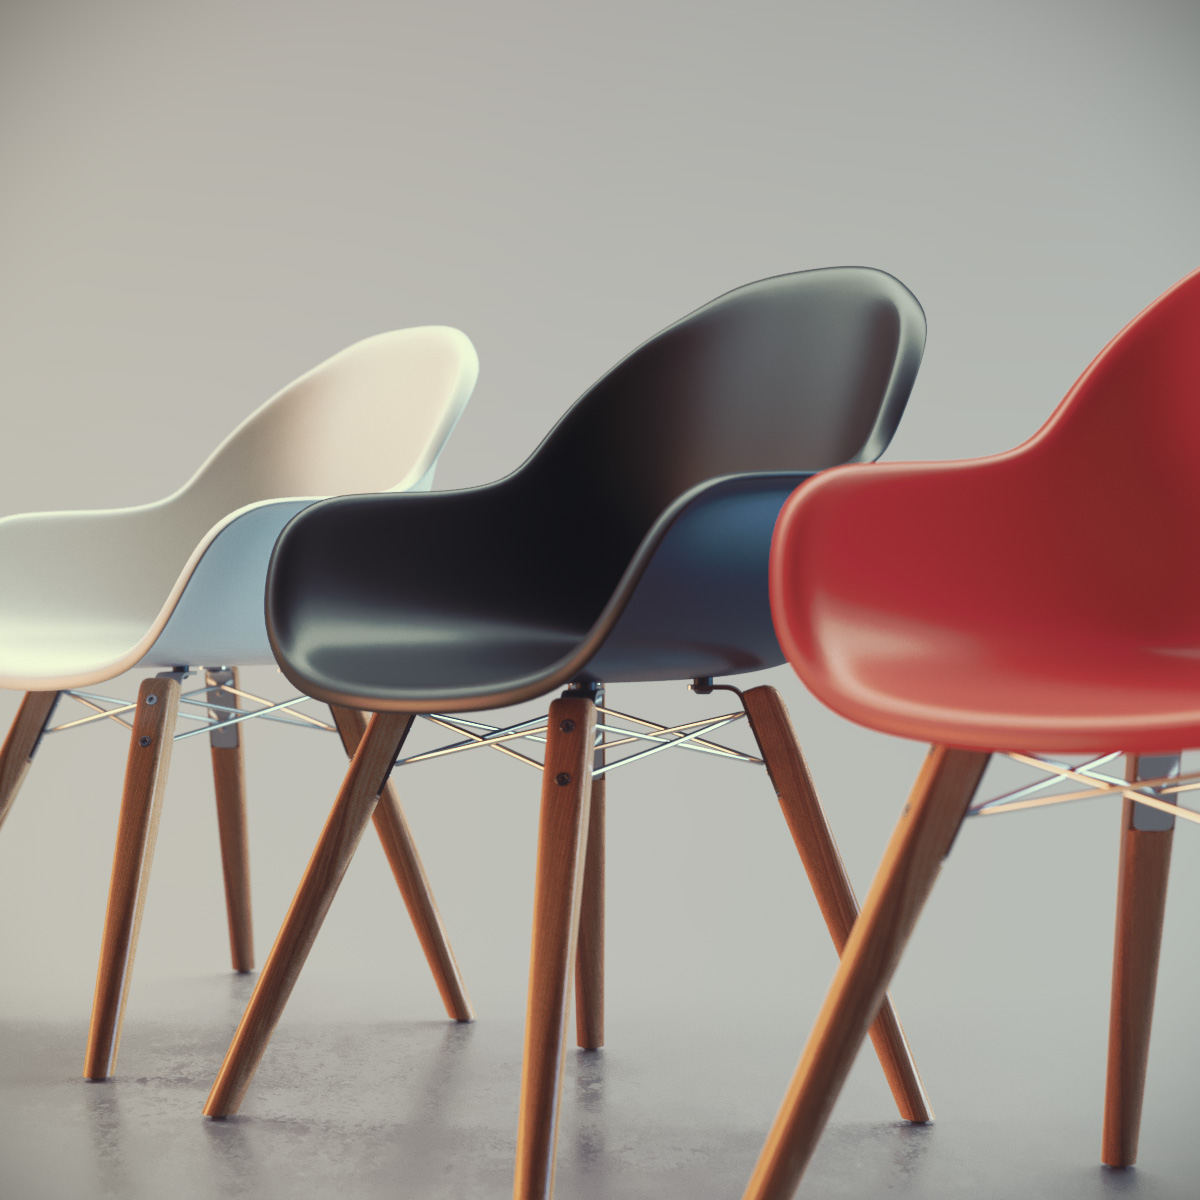 Zuo Tidal Dining Chair